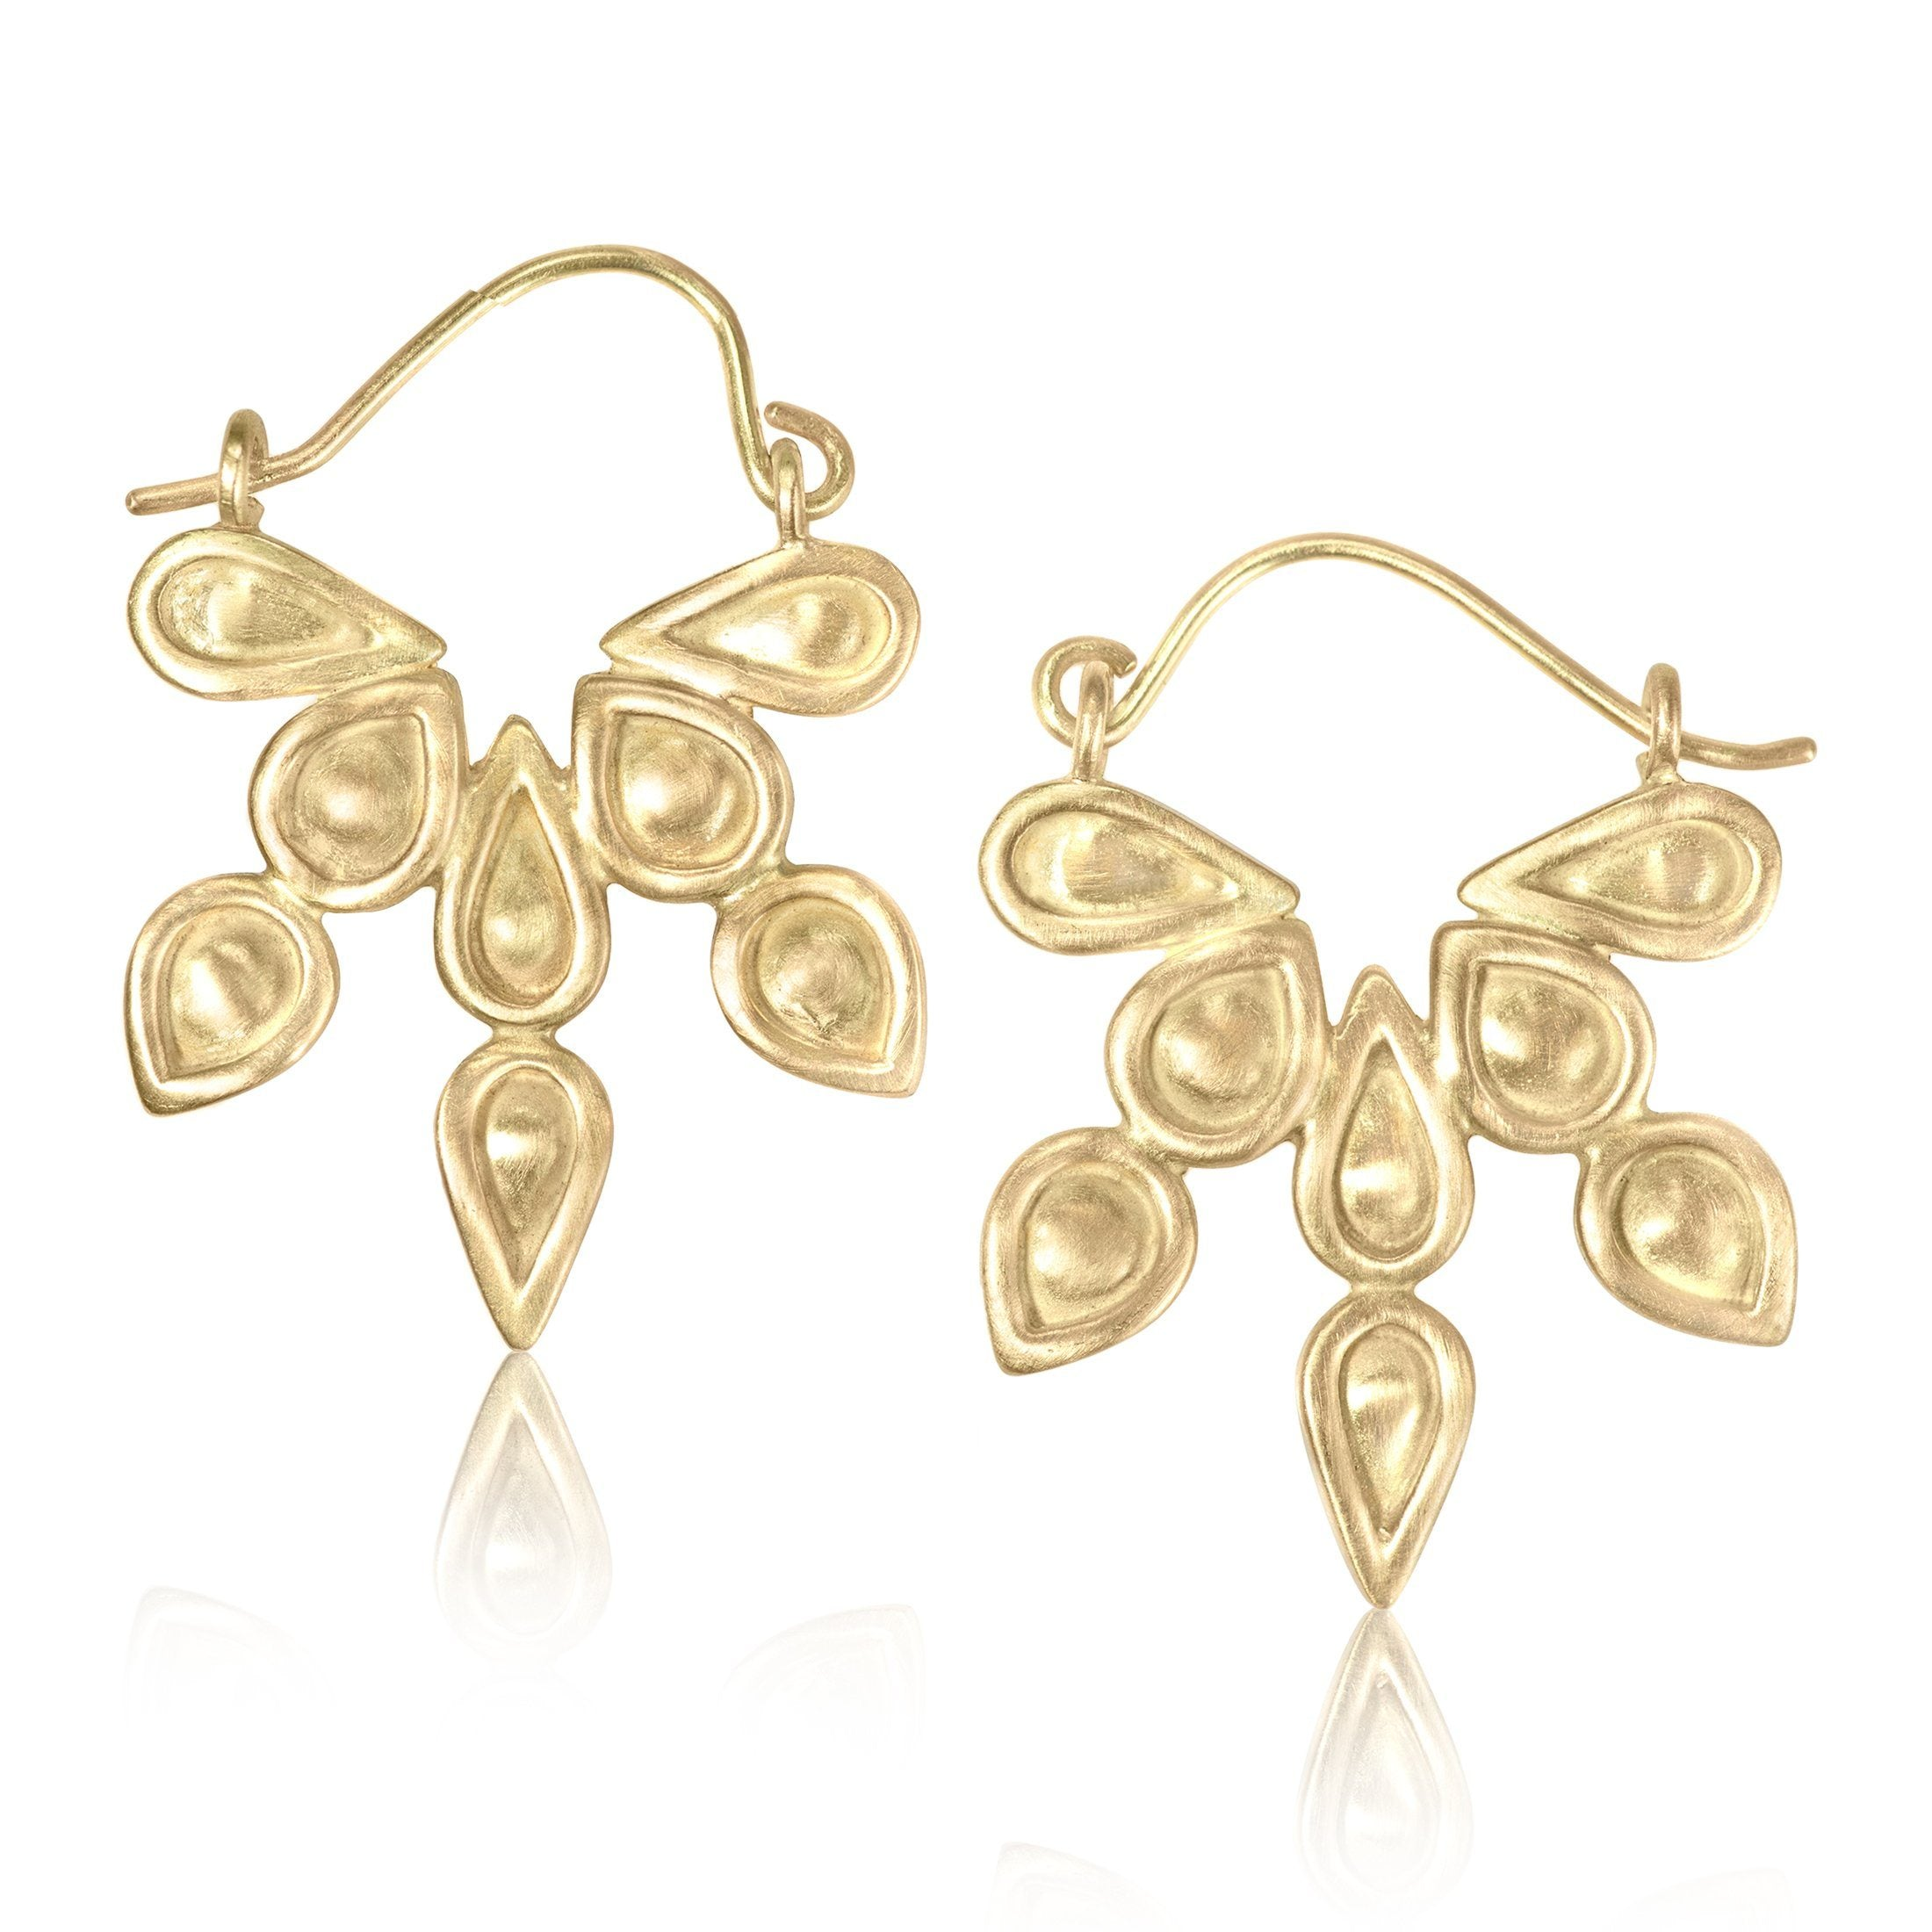 molten earrings john missoma pdp main buymissoma jewellery gold online com hoop magna lewis at rsp johnlewis